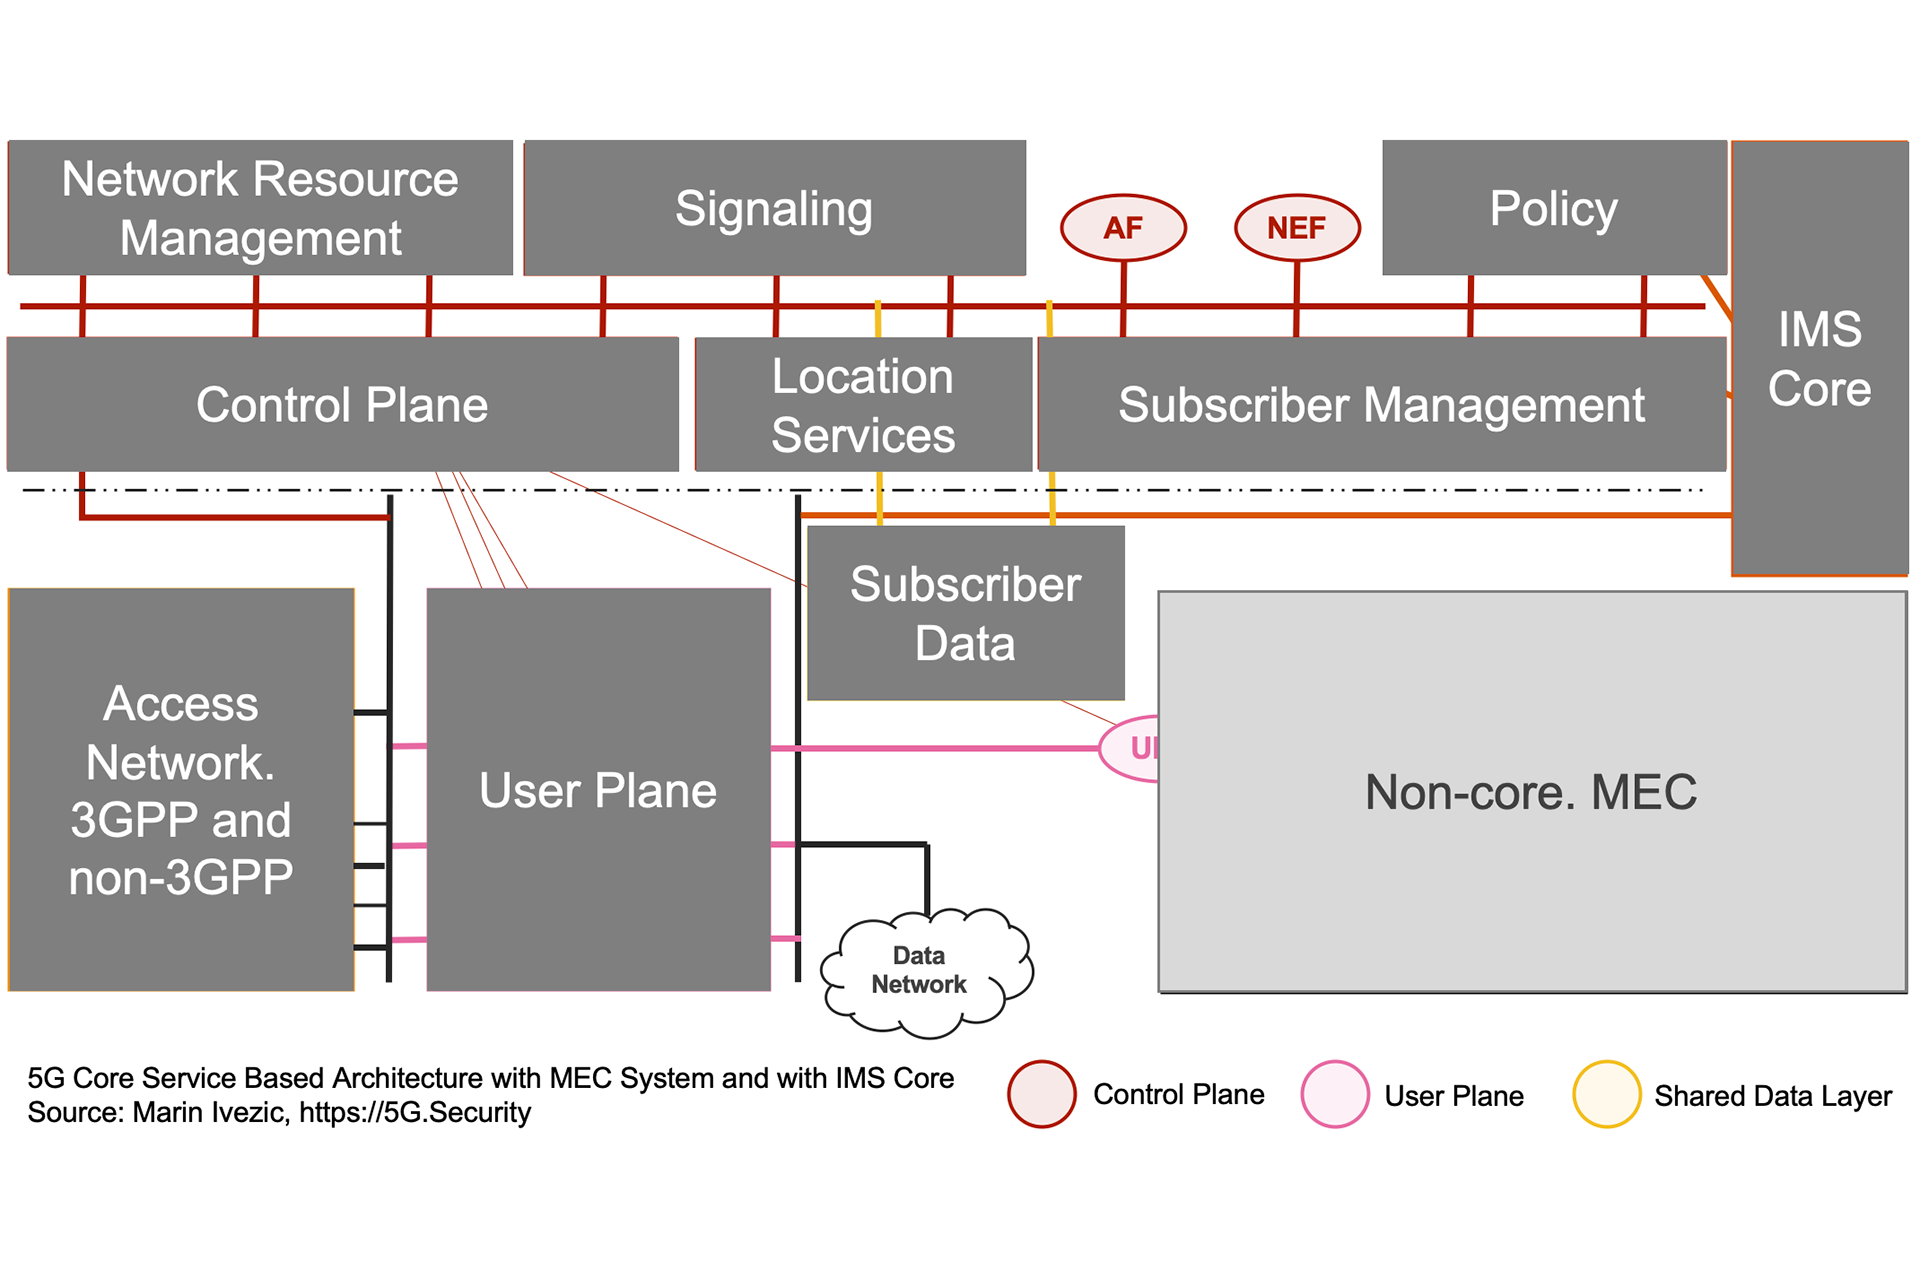 5G SBA IMS MEC Architecture - Application Function and Network Exposure Function